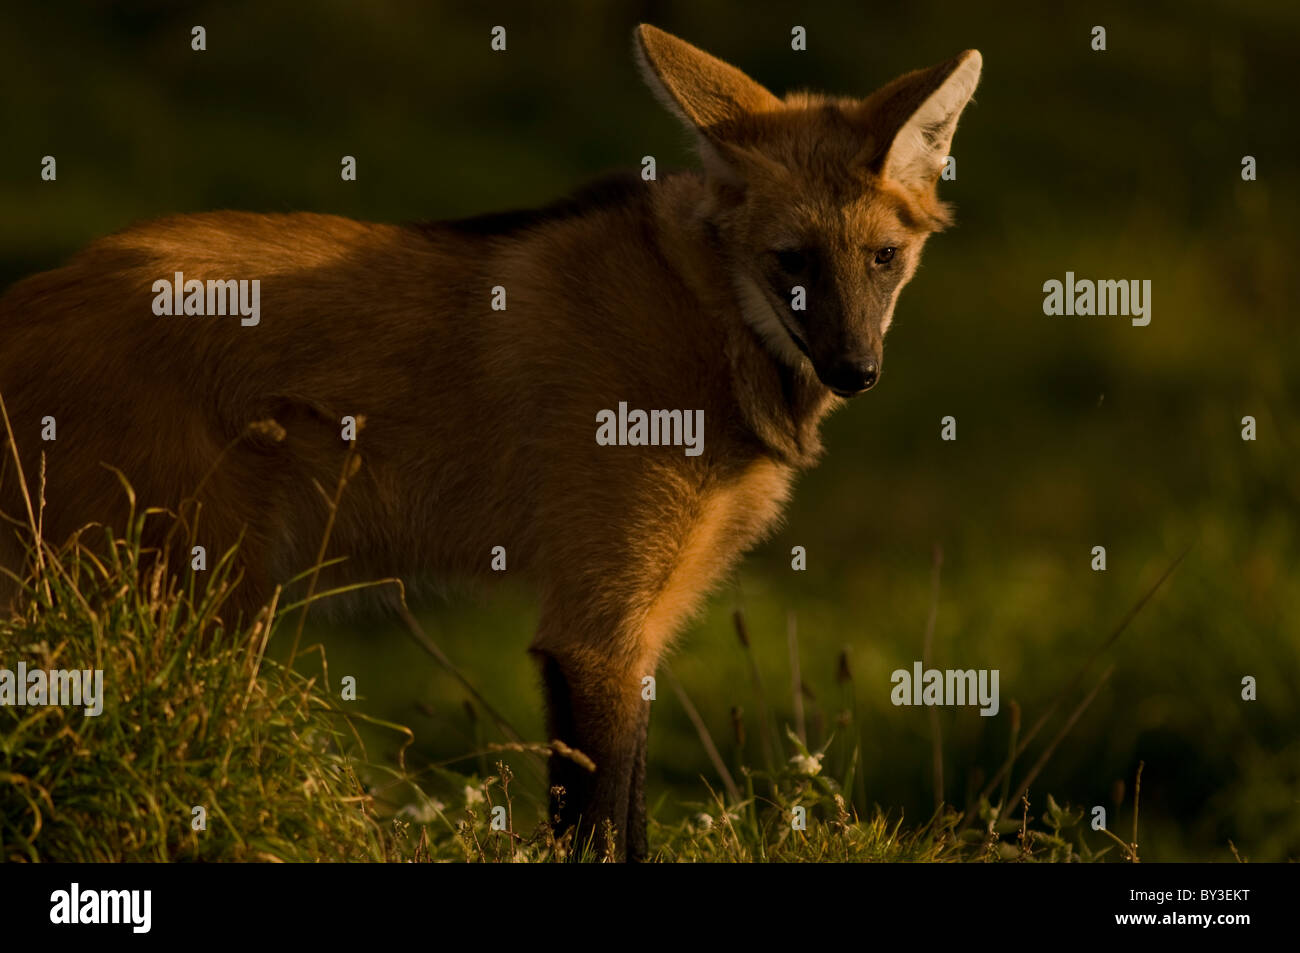 Maned wolf {Chrysocyon brachyurus} Endangered species, South America - Stock Image